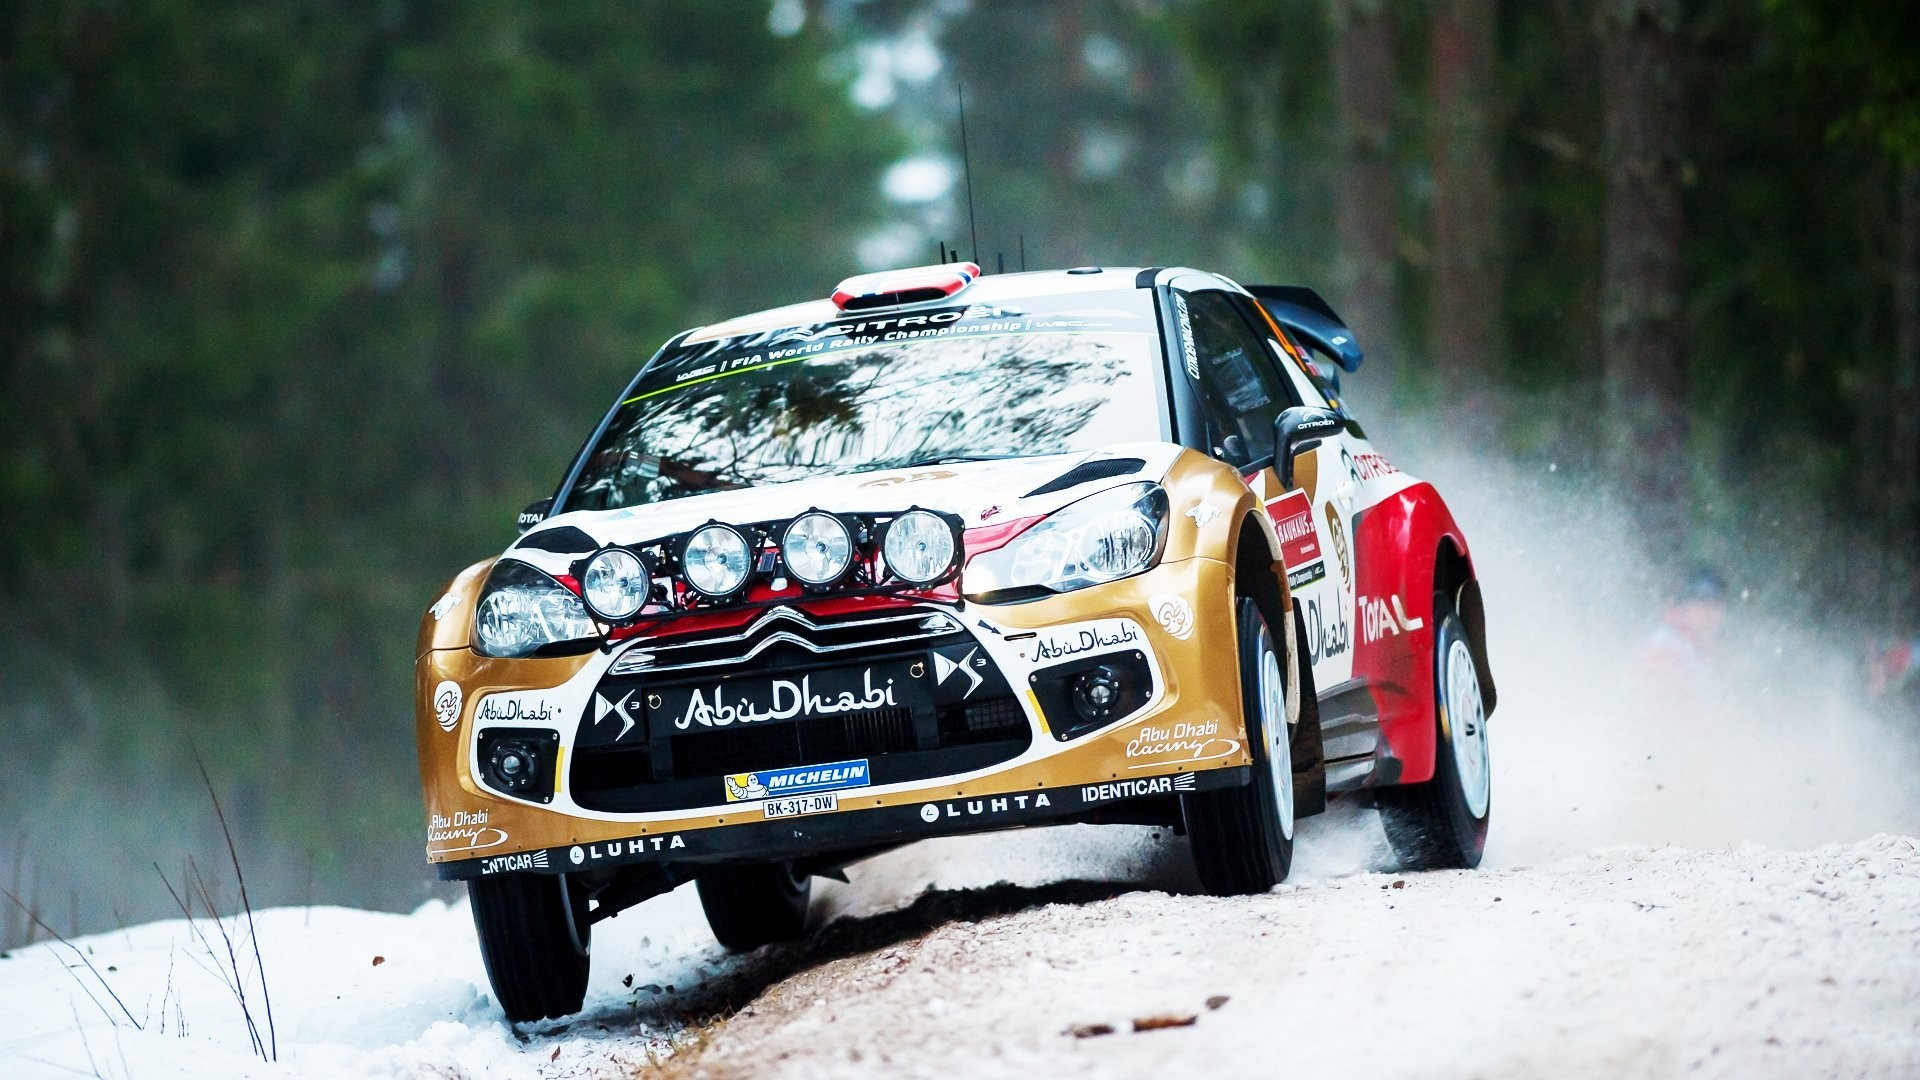 Wrc Wallpapers Hd 69 Images